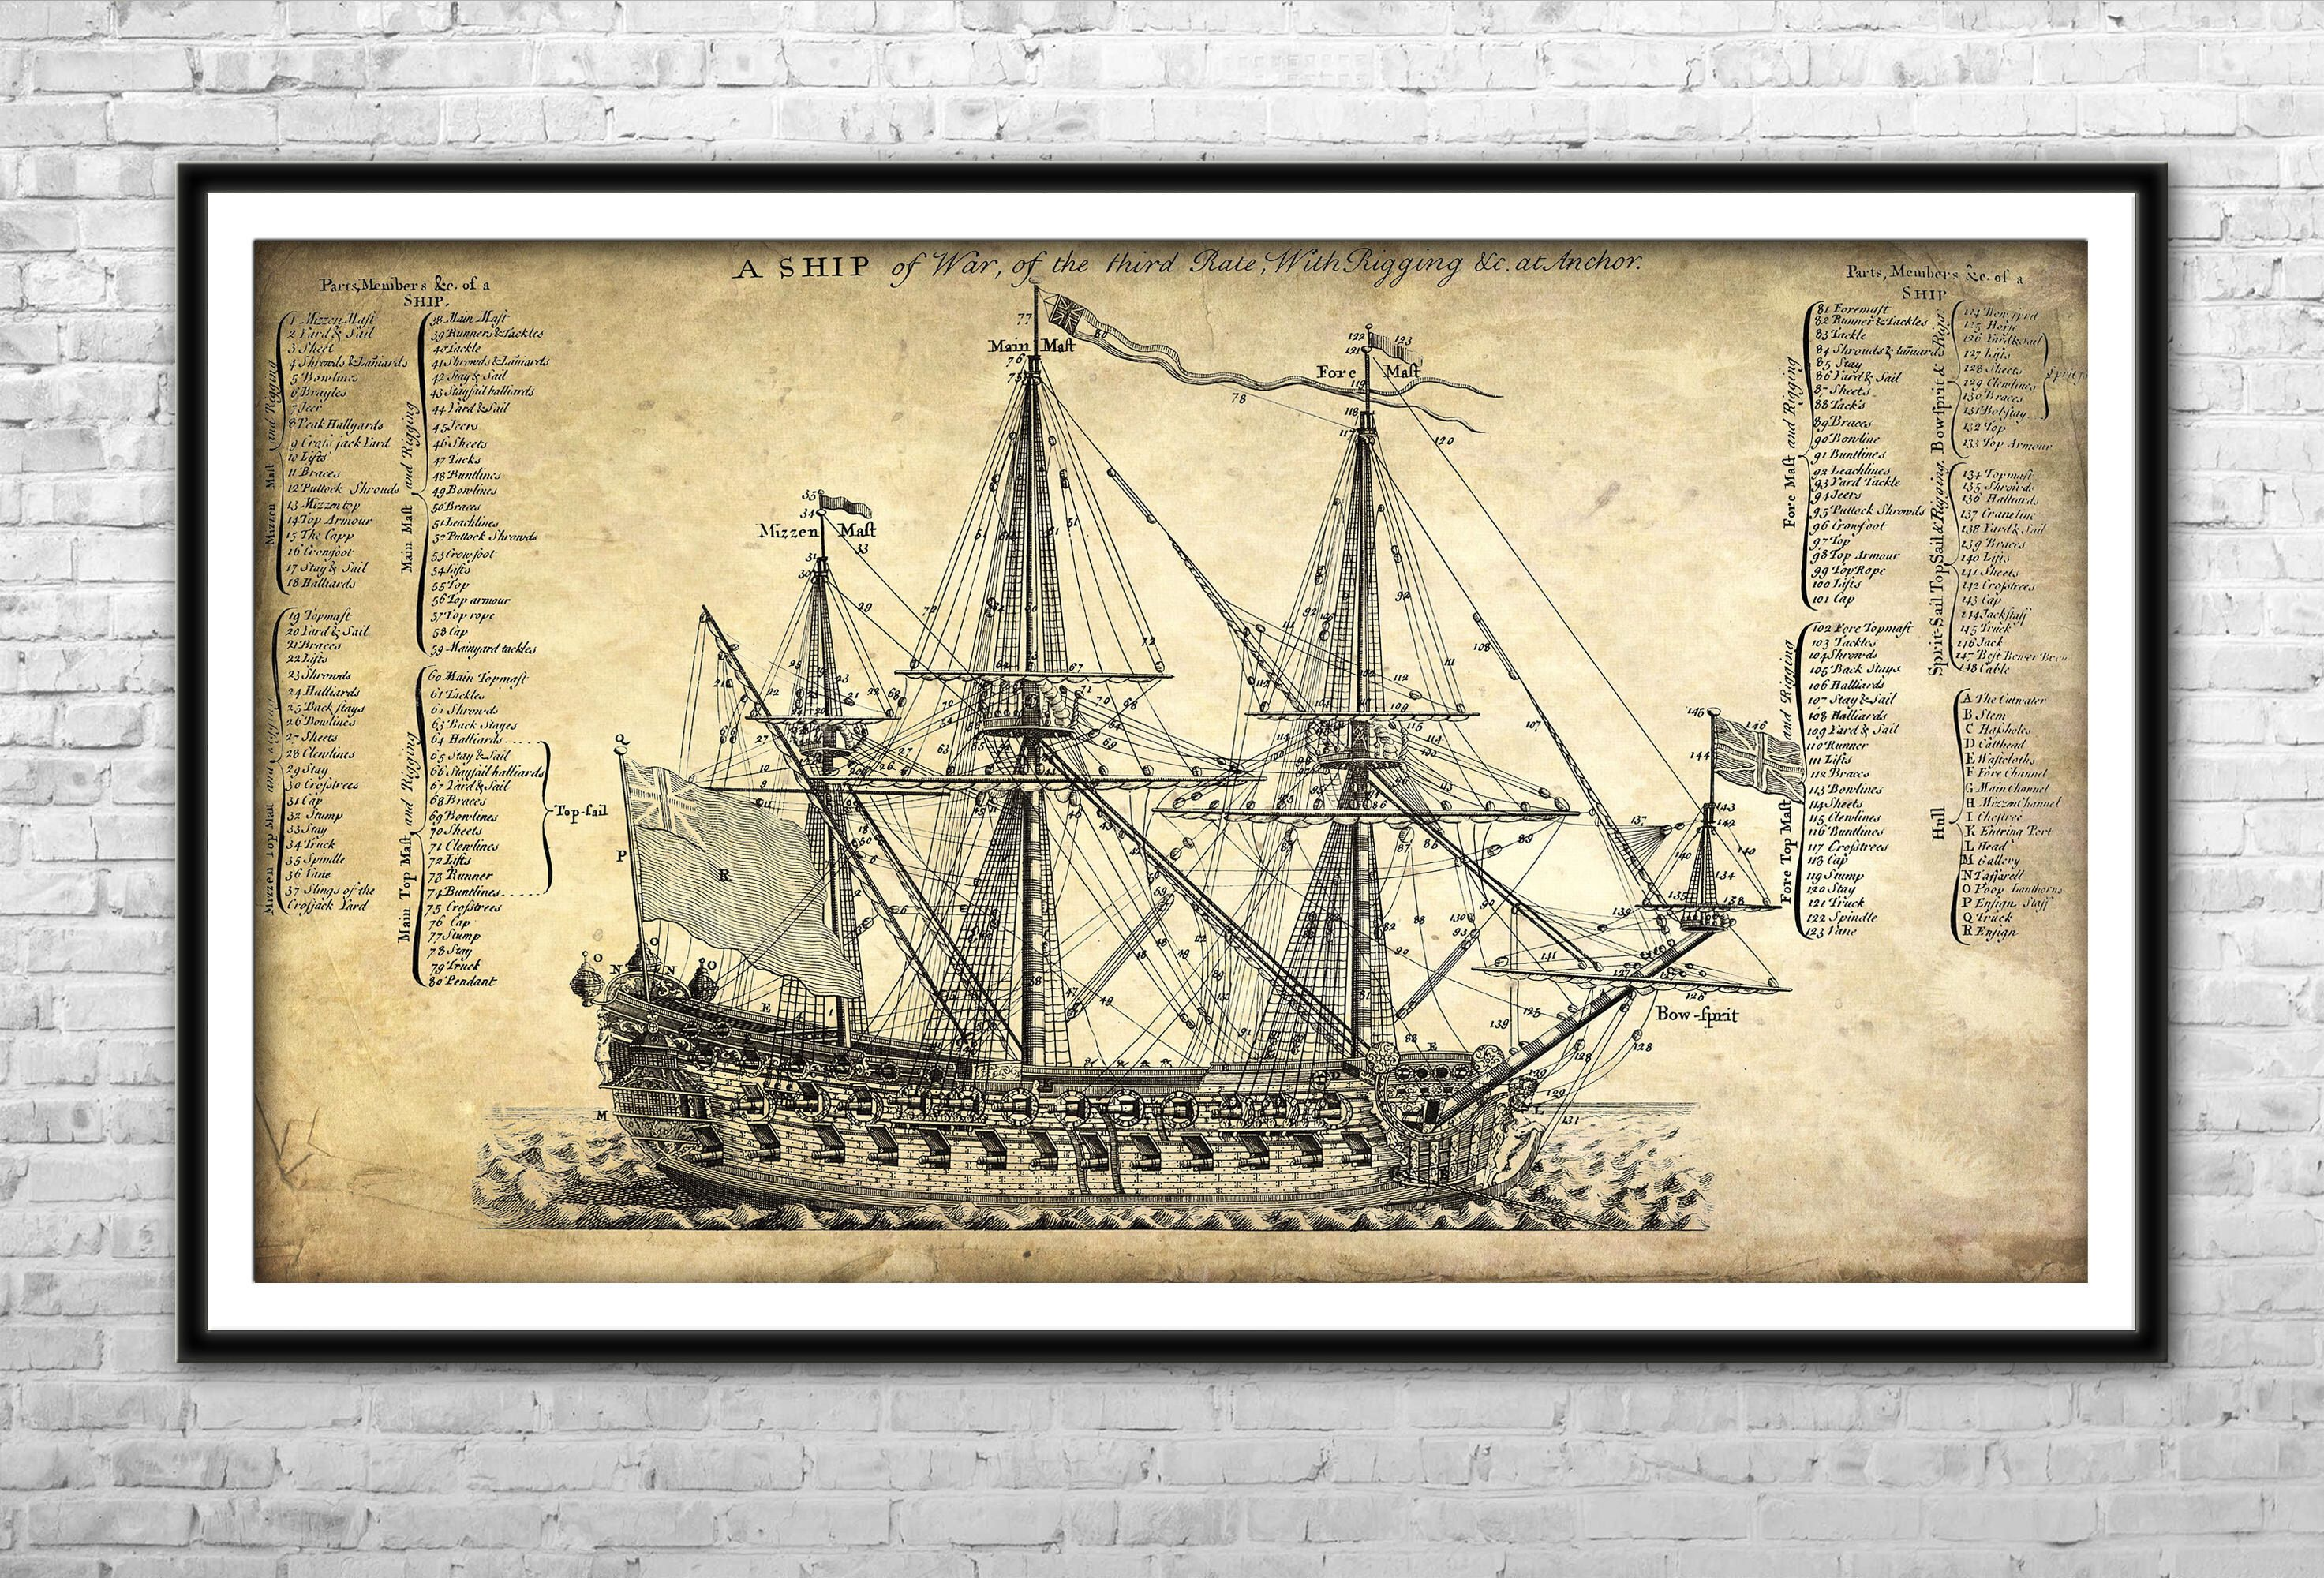 Old ship blueprint archival paper print and canvas print warship old ship blueprint archival paper print and canvas print warship poster british ship wall art home decoration multi panel pirate ship print malvernweather Image collections